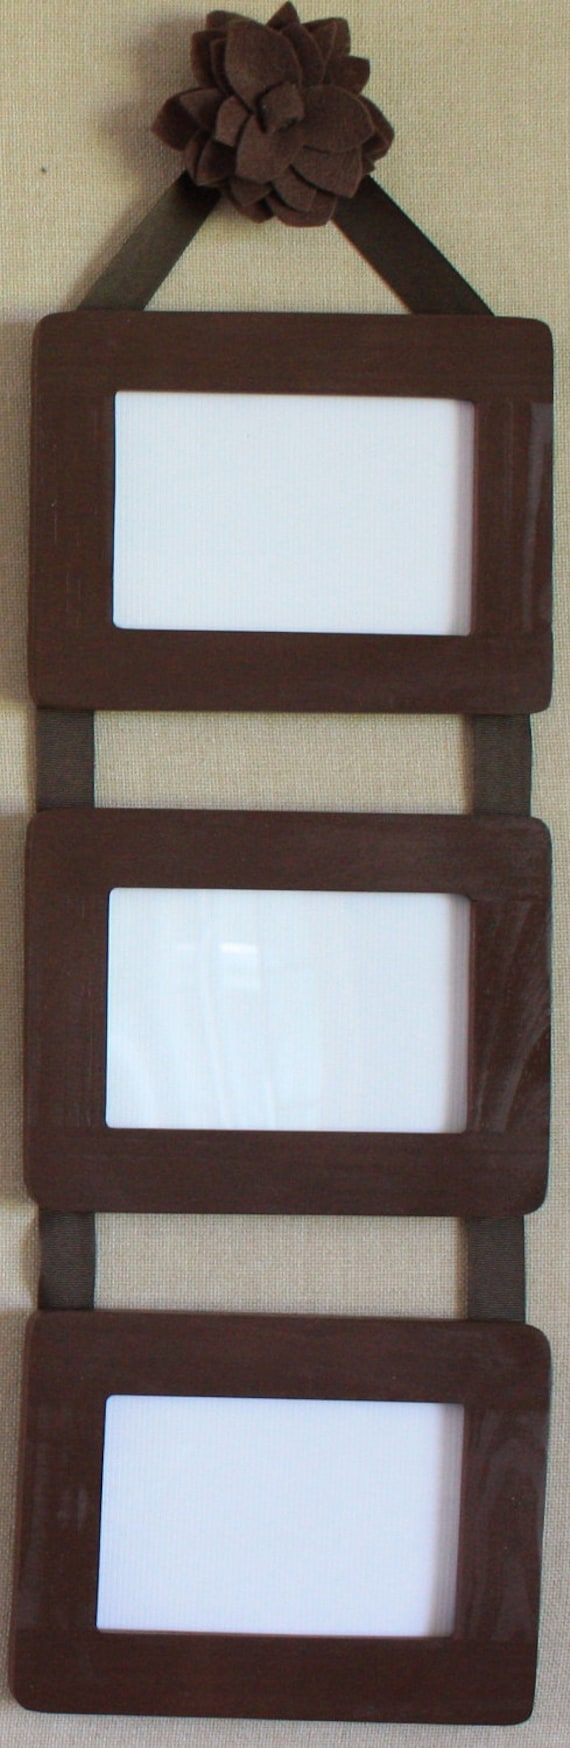 Ribbon Hanging Picture Frames Set of 3 by